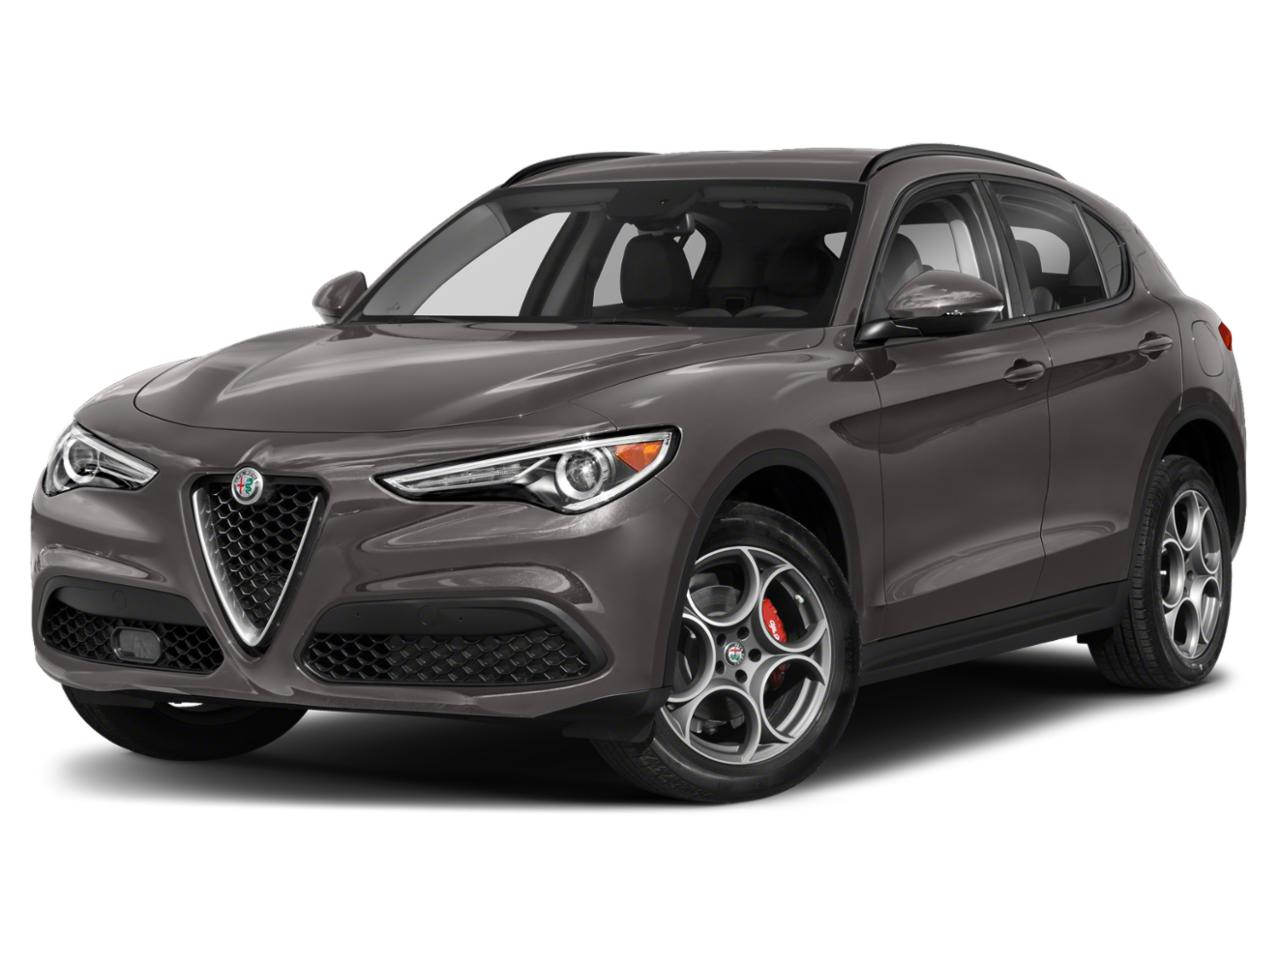 2018 Alfa Romeo Stelvio Vehicle Photo in Willow Grove, PA 19090